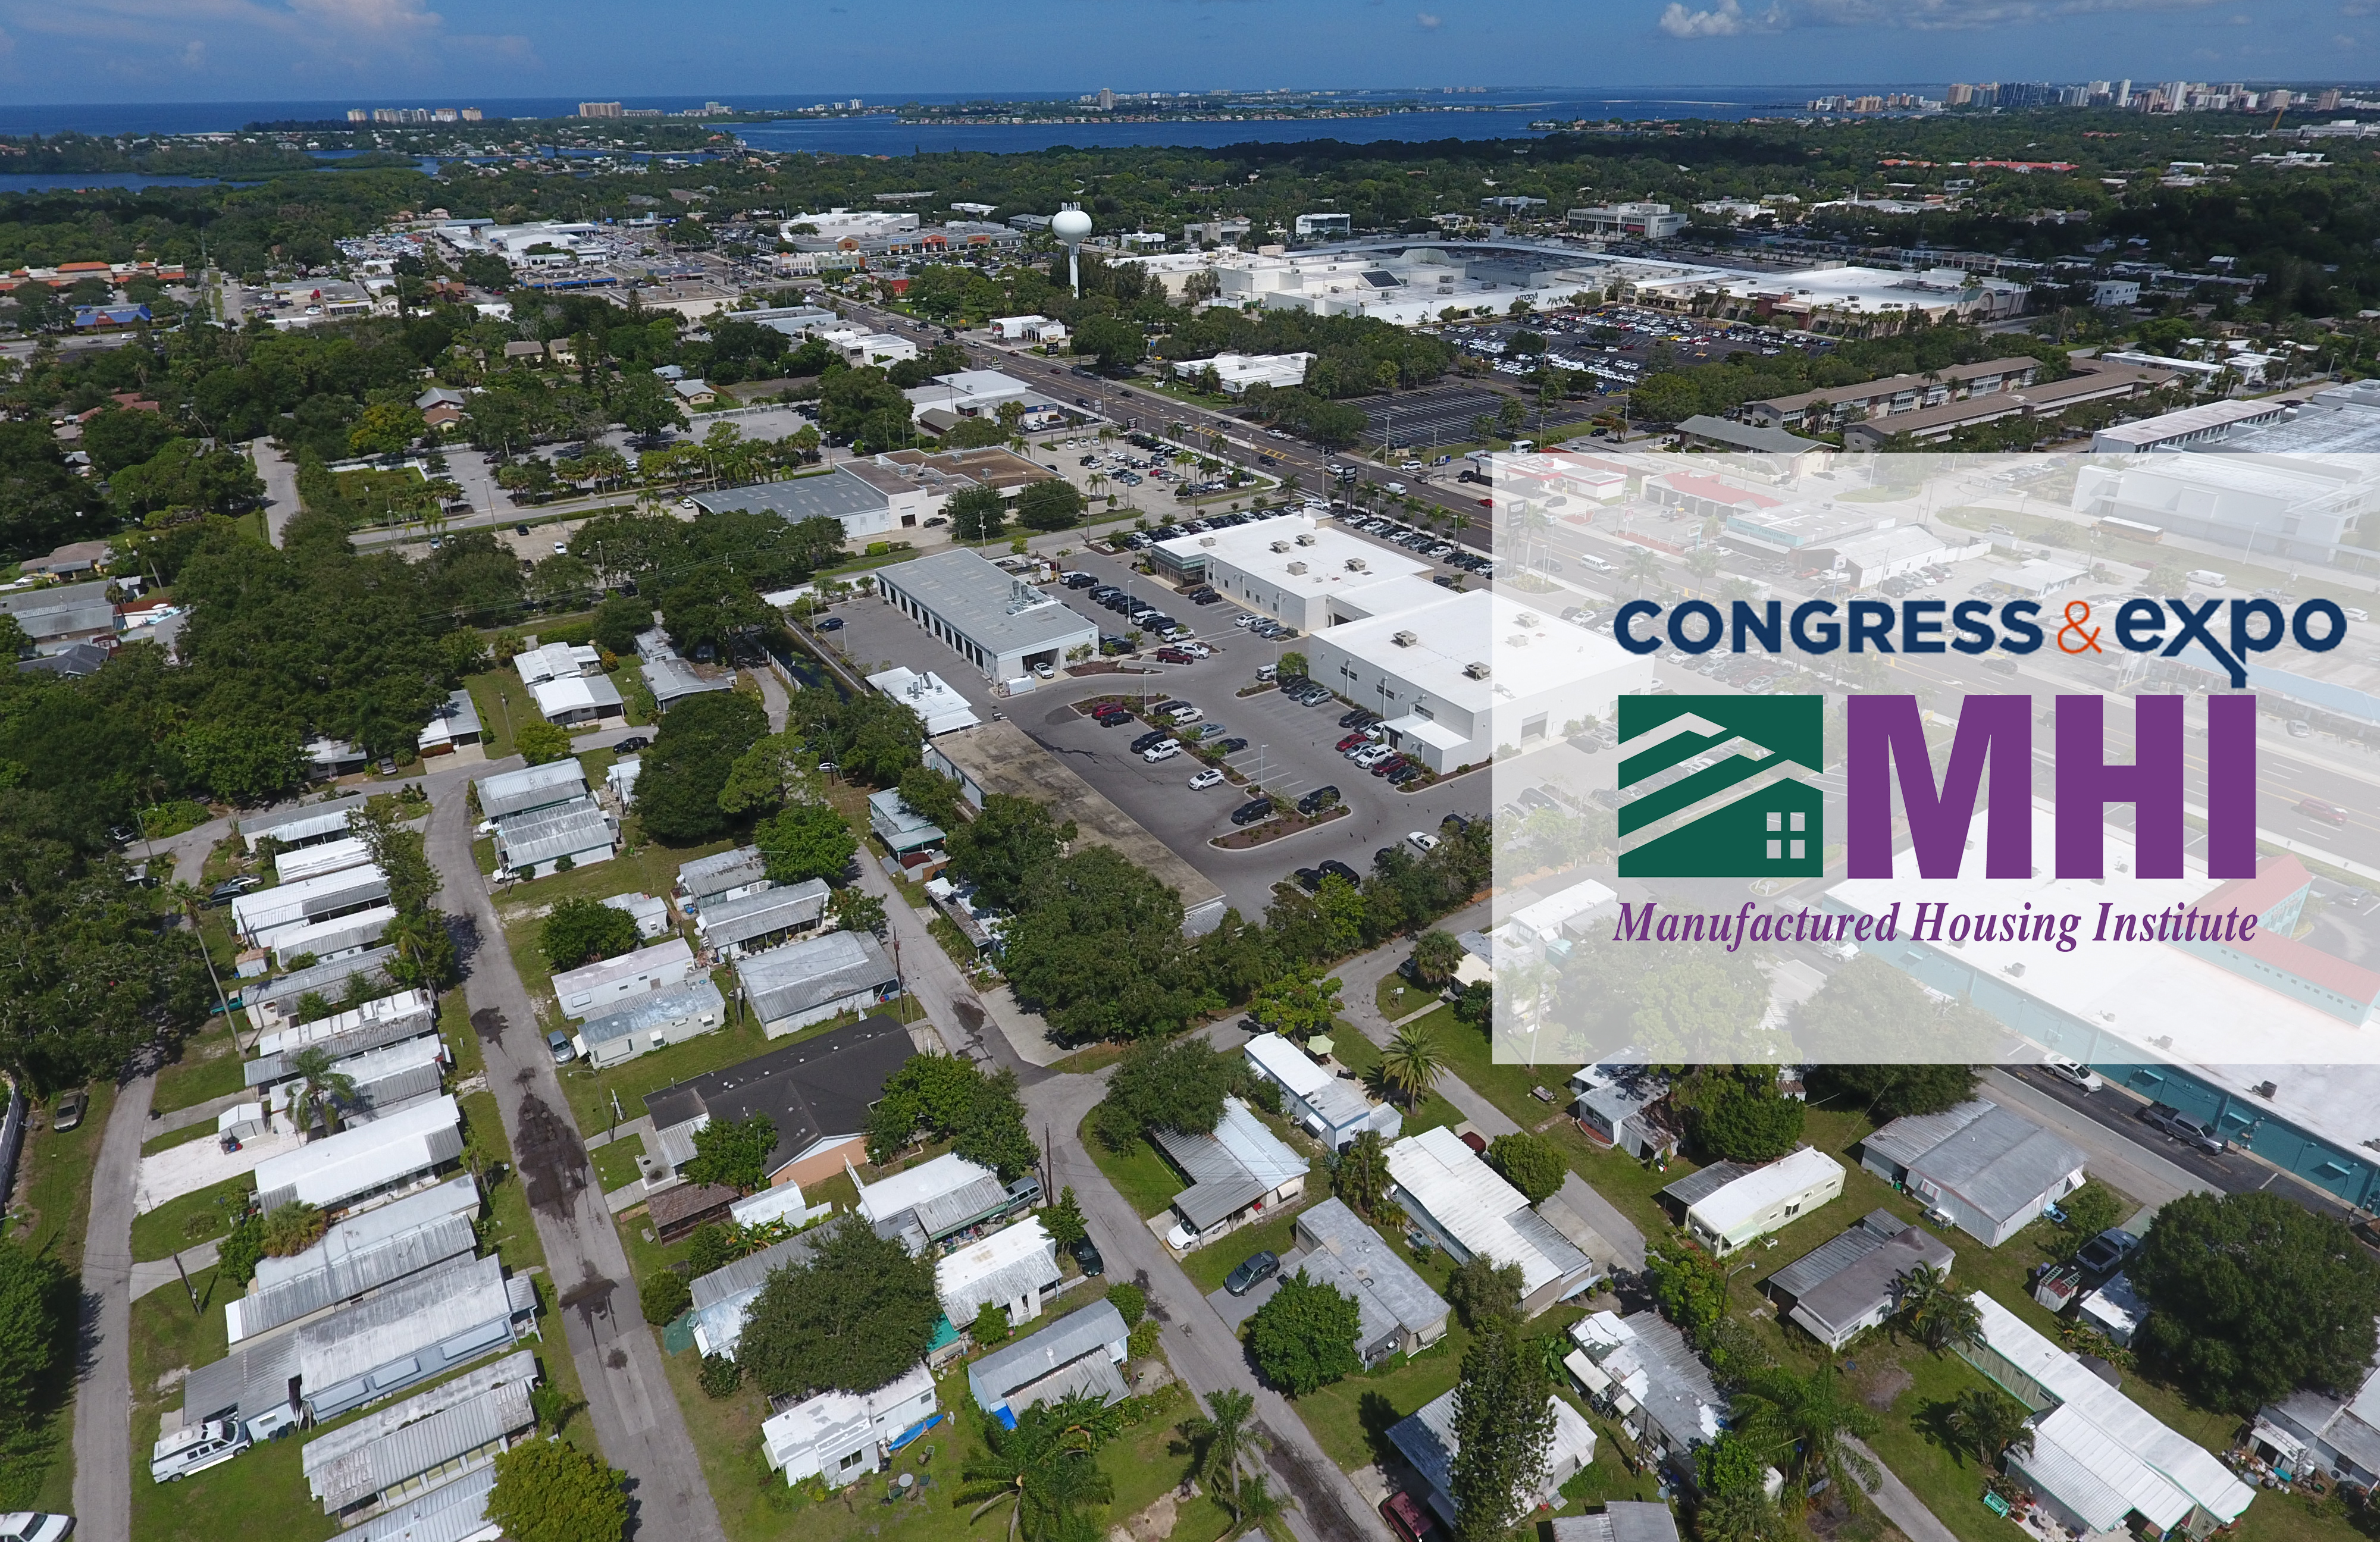 Nye Commercial Manufactured Housing Group was at the Annual MHI2019 Congress and Expo